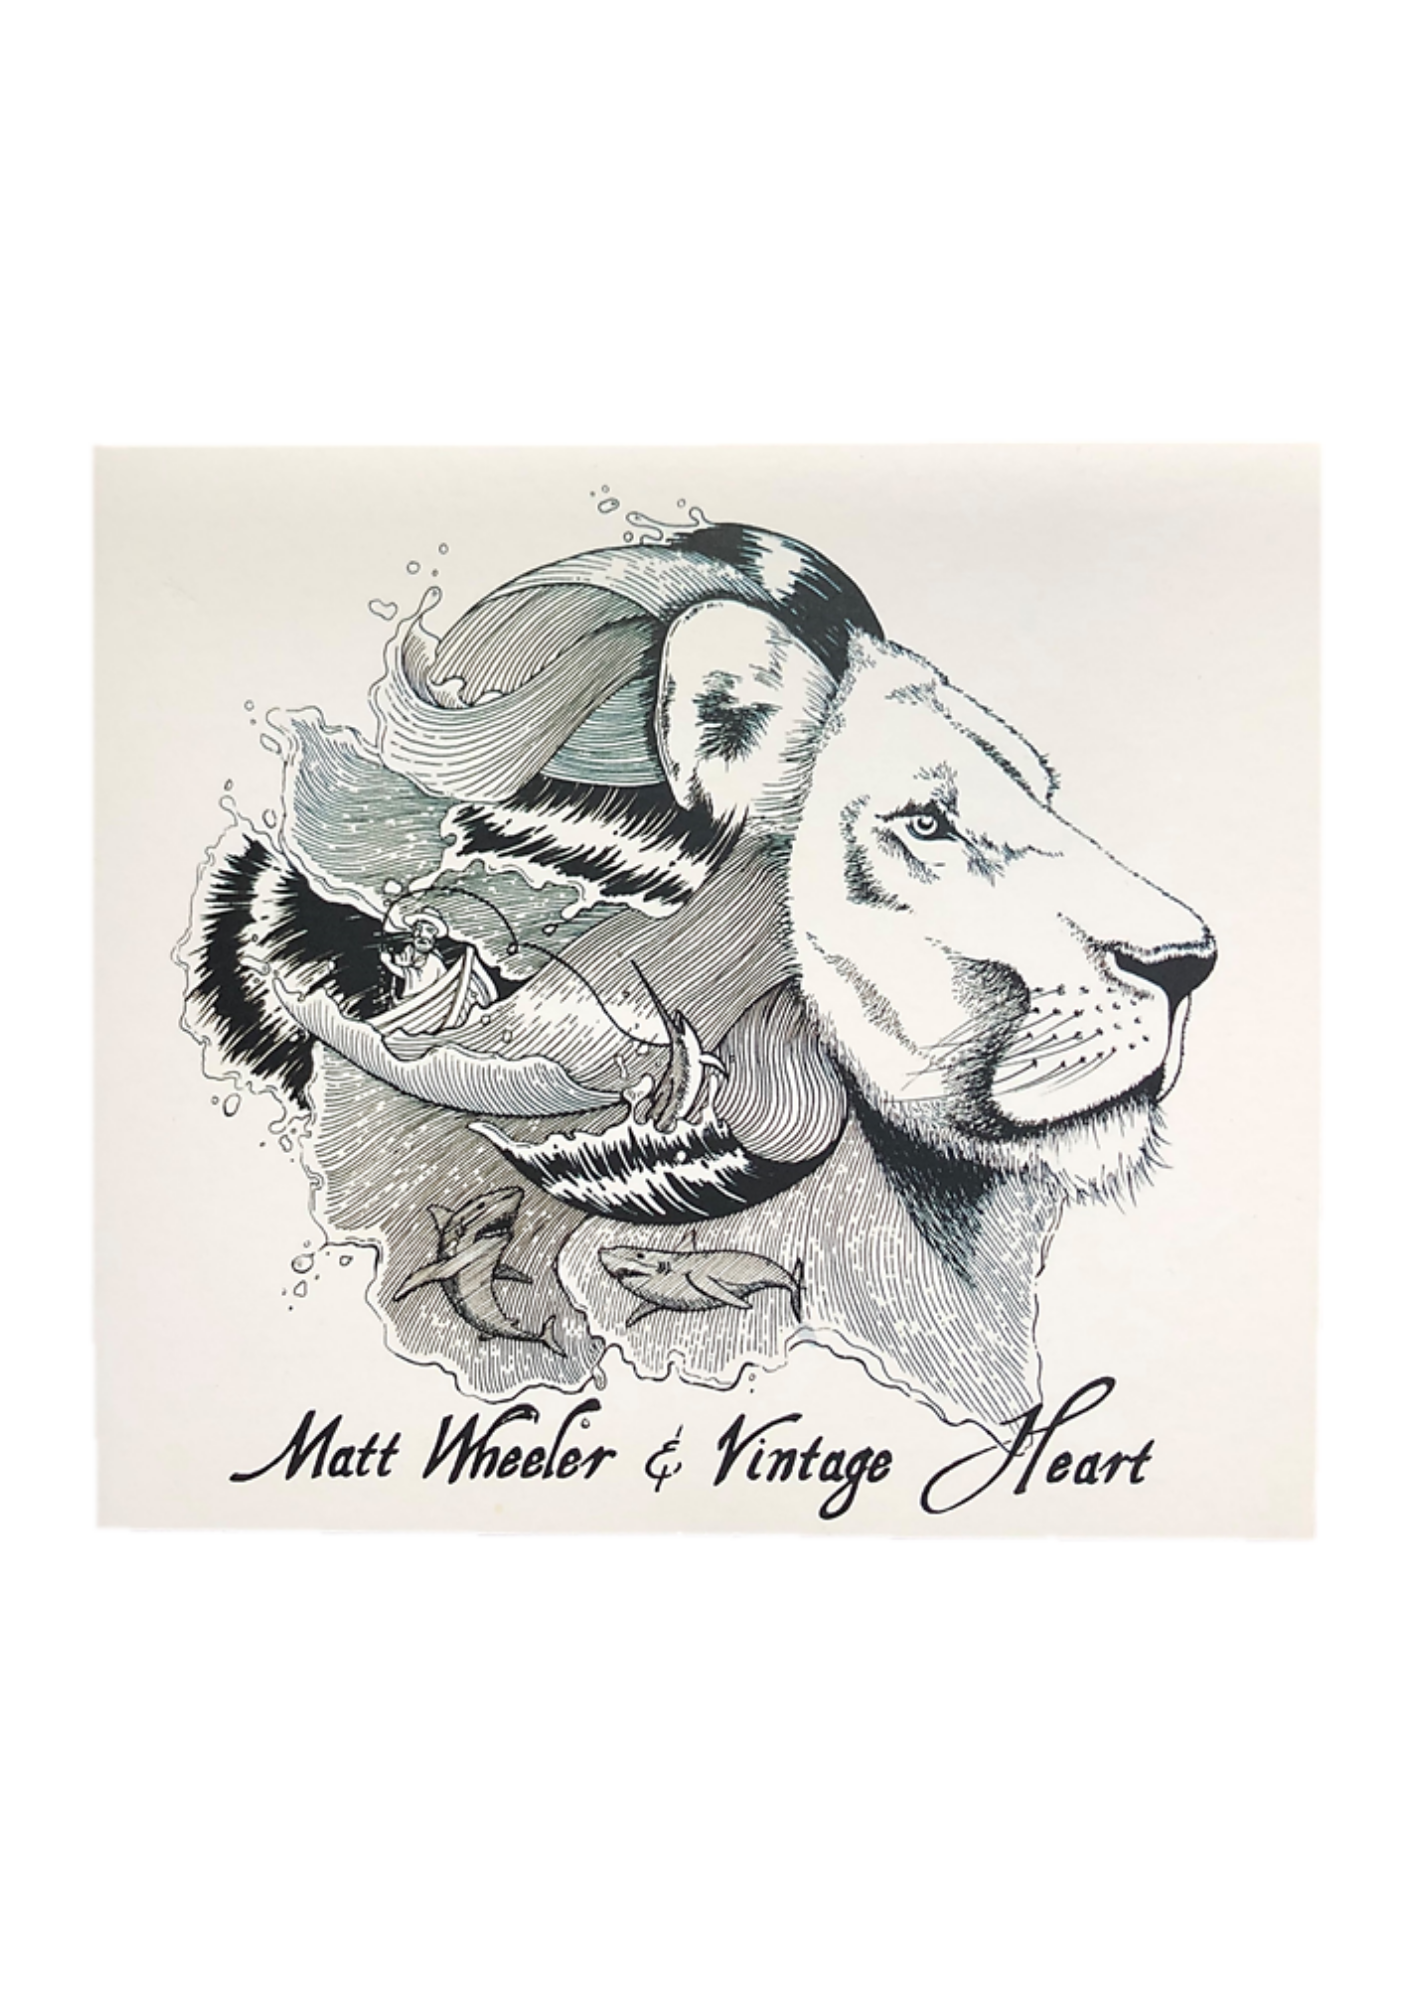 Matt Wheeler & Vintage Heart | Self-Titled Album (CD)